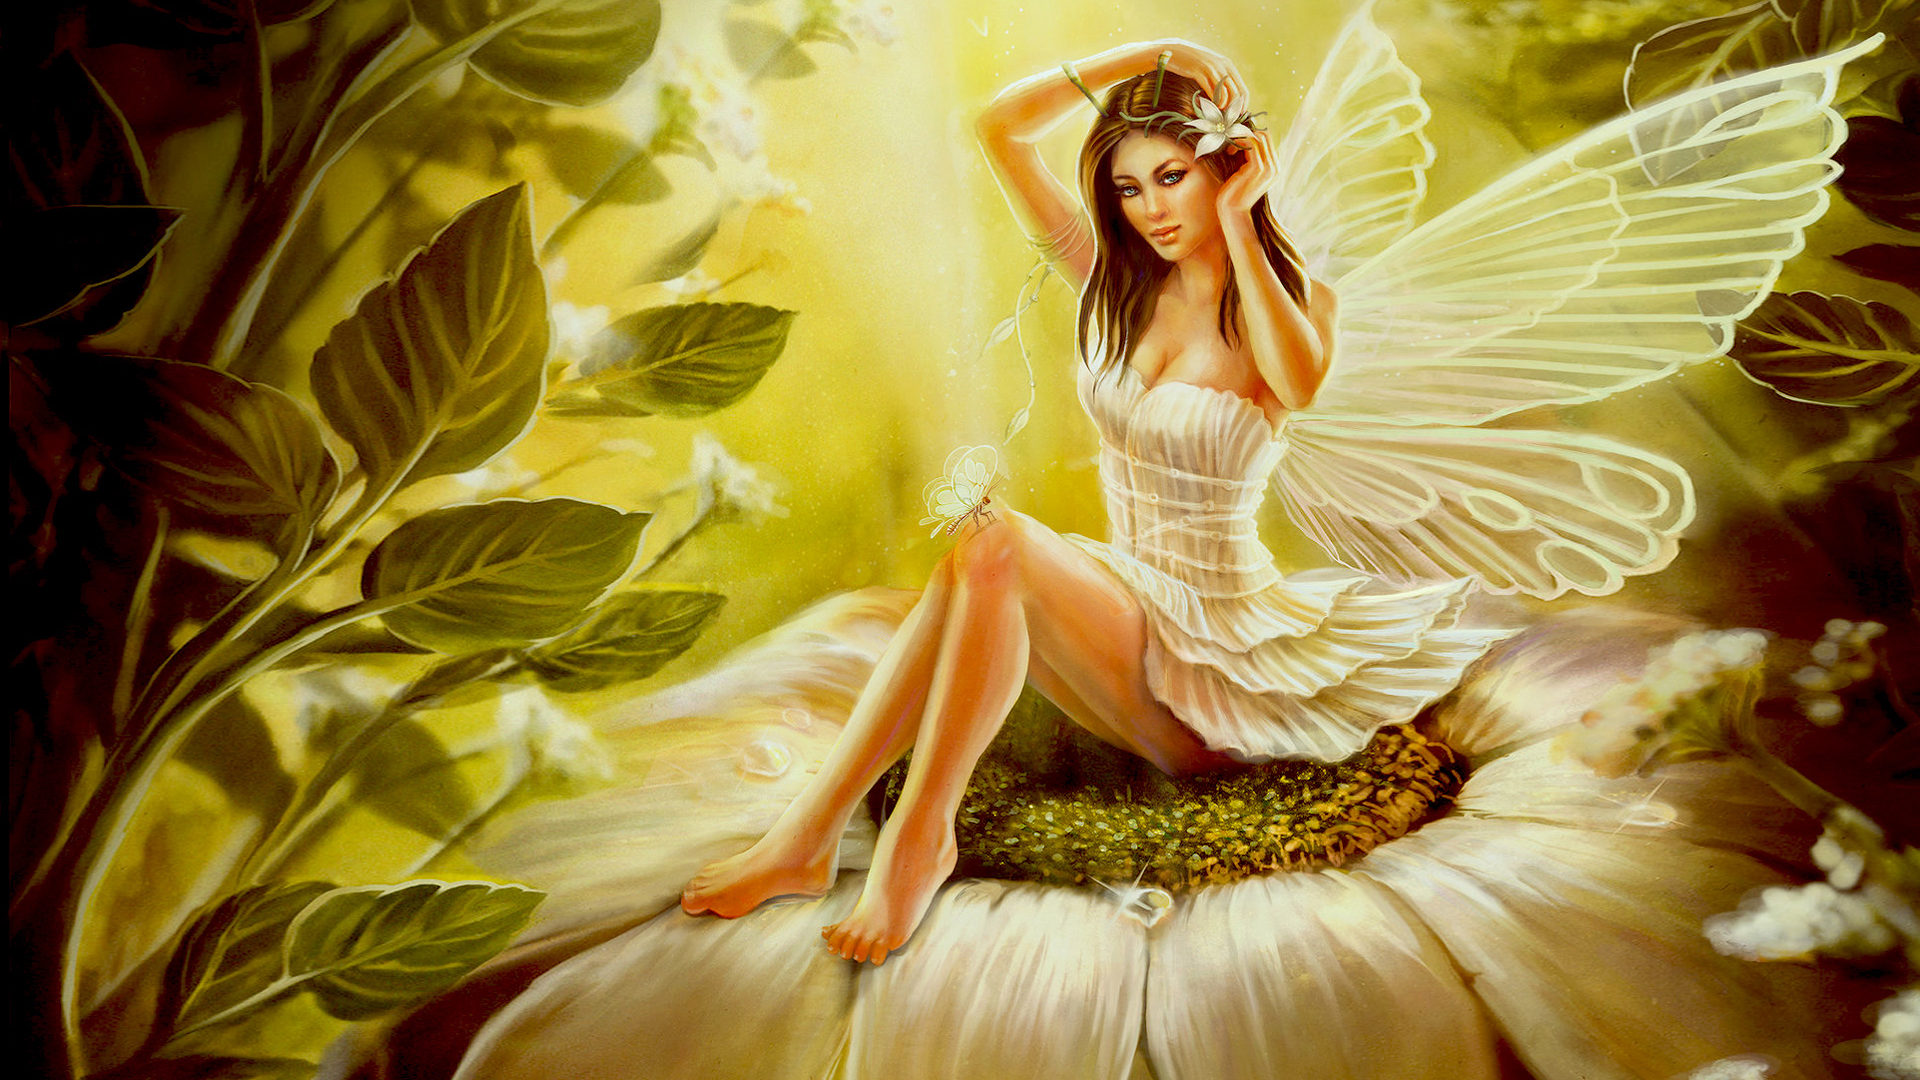 Girl With Wings Of A Butterfly Flower In Her Hair Green